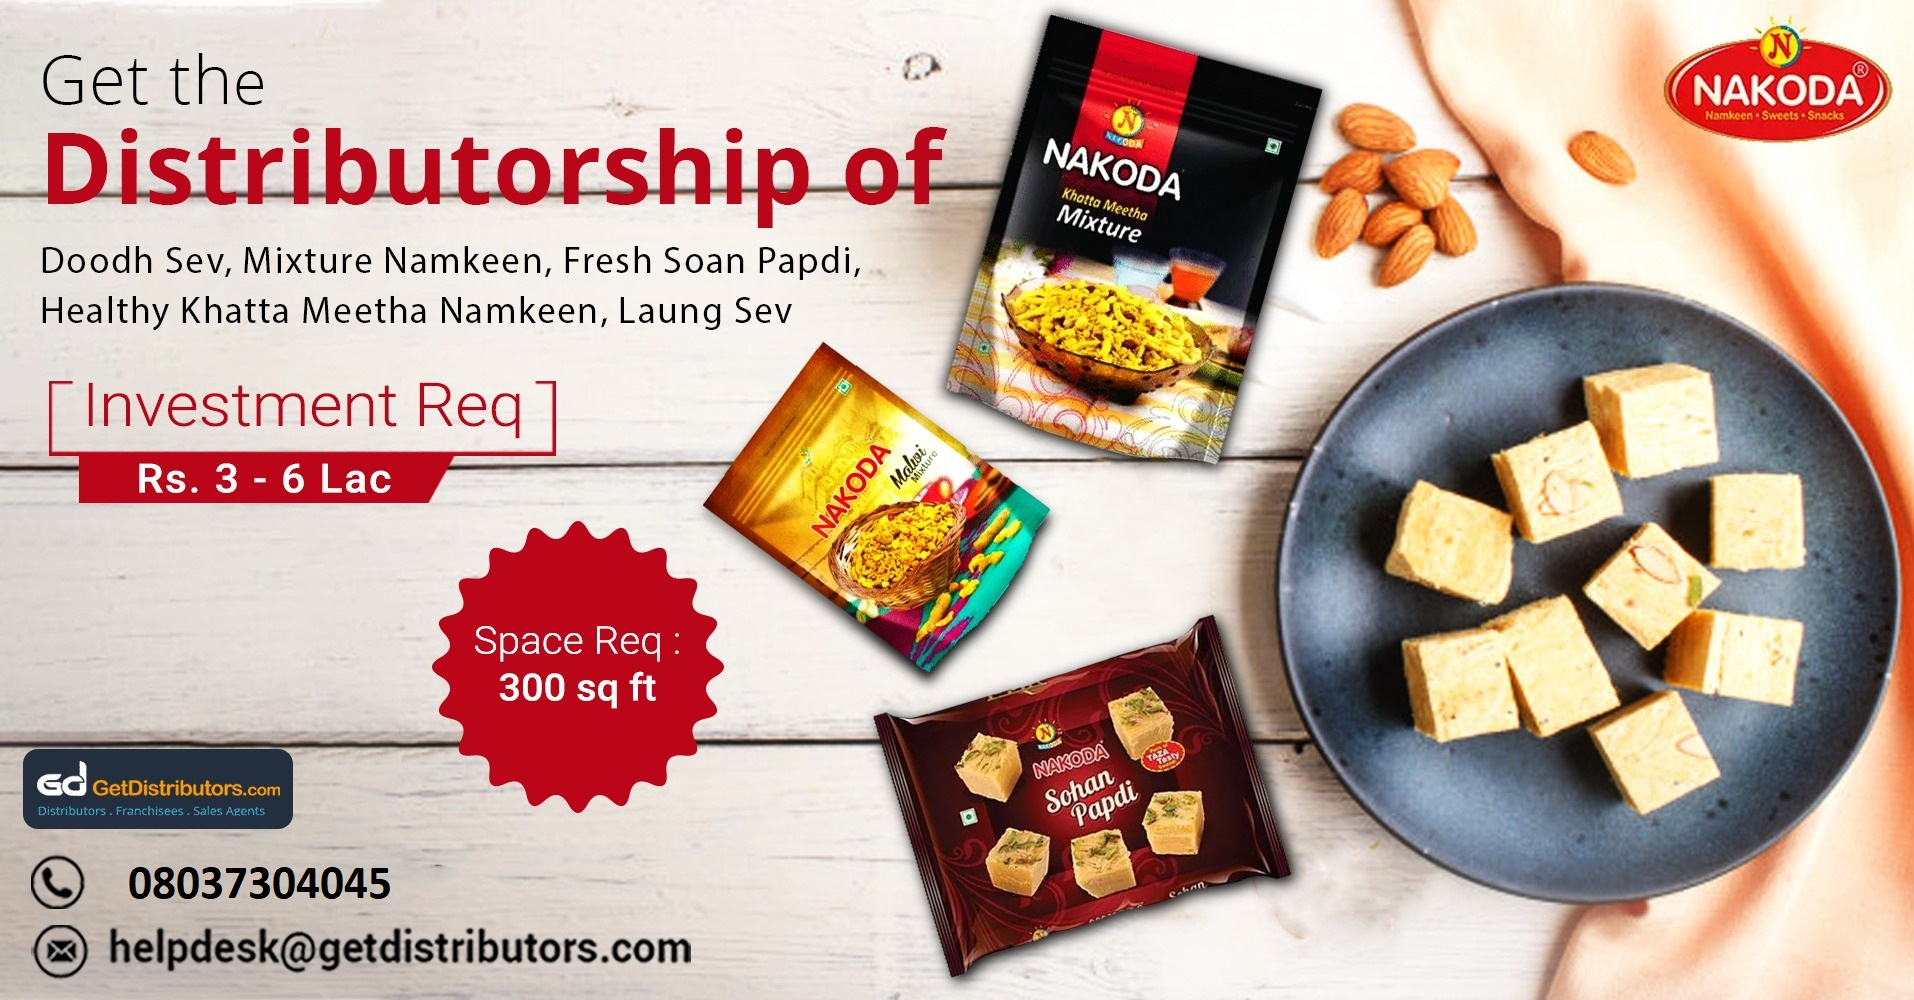 Take up the distributorship of our mouthwatering range of Indian snacks and sweets